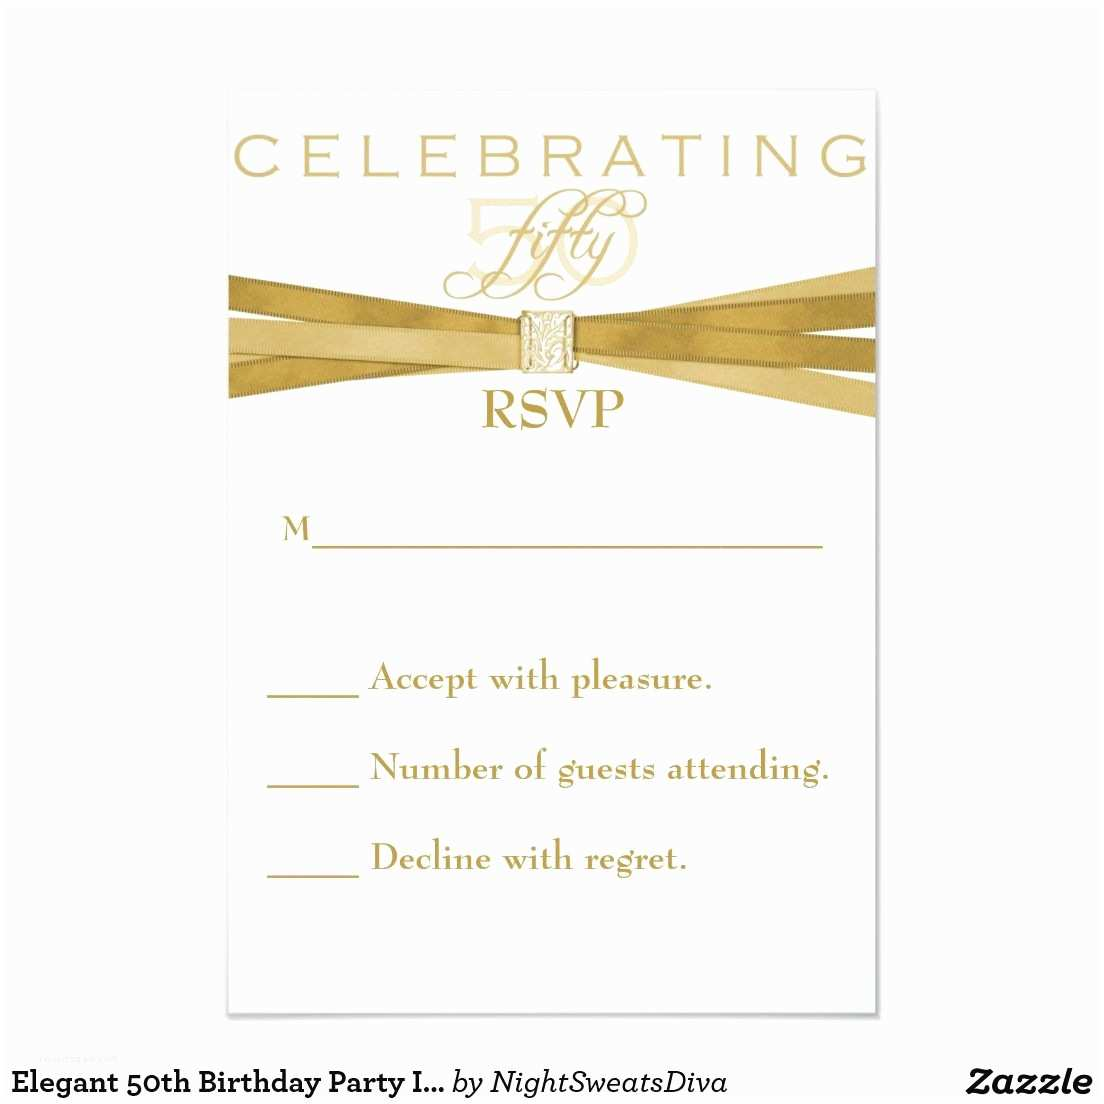 Wedding Invitation Rsvp Wording Samples Rsvp Invitation Card Rsvp Invitation Card Sample Card